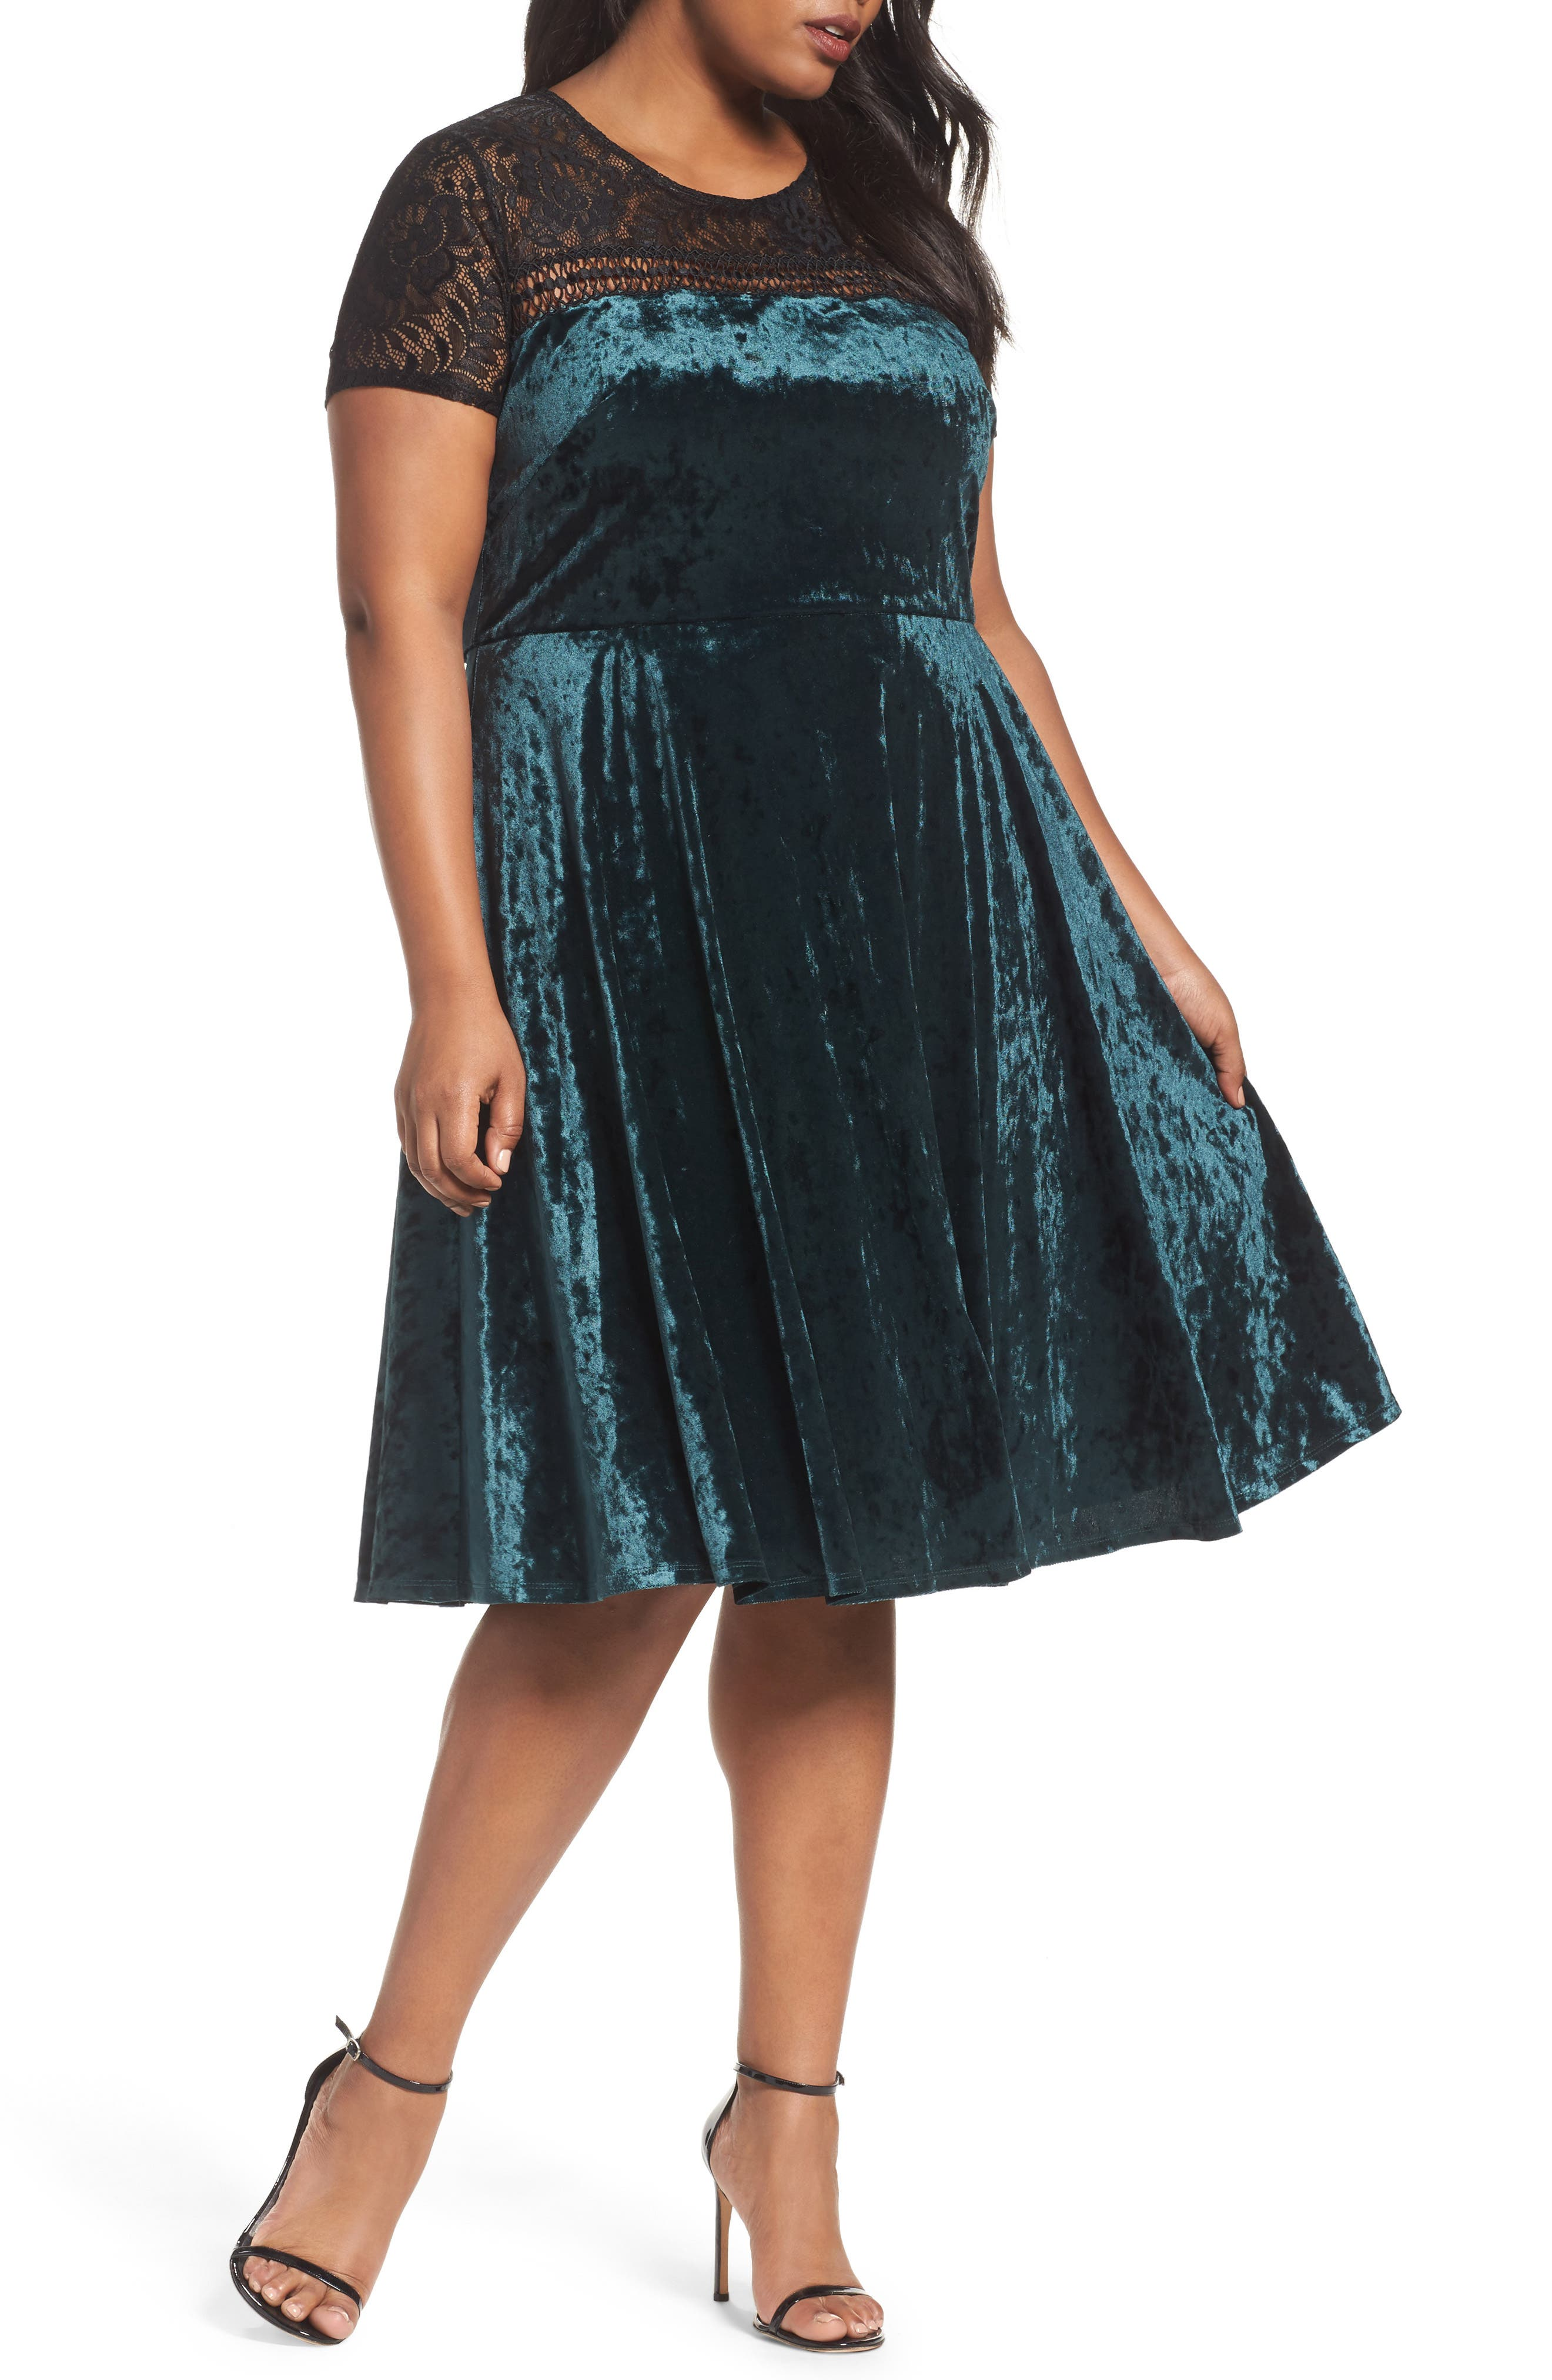 Alternate Image 1 Selected - Sangria Lace Yoke Velvet Fit & Flare Dress (Plus Size)